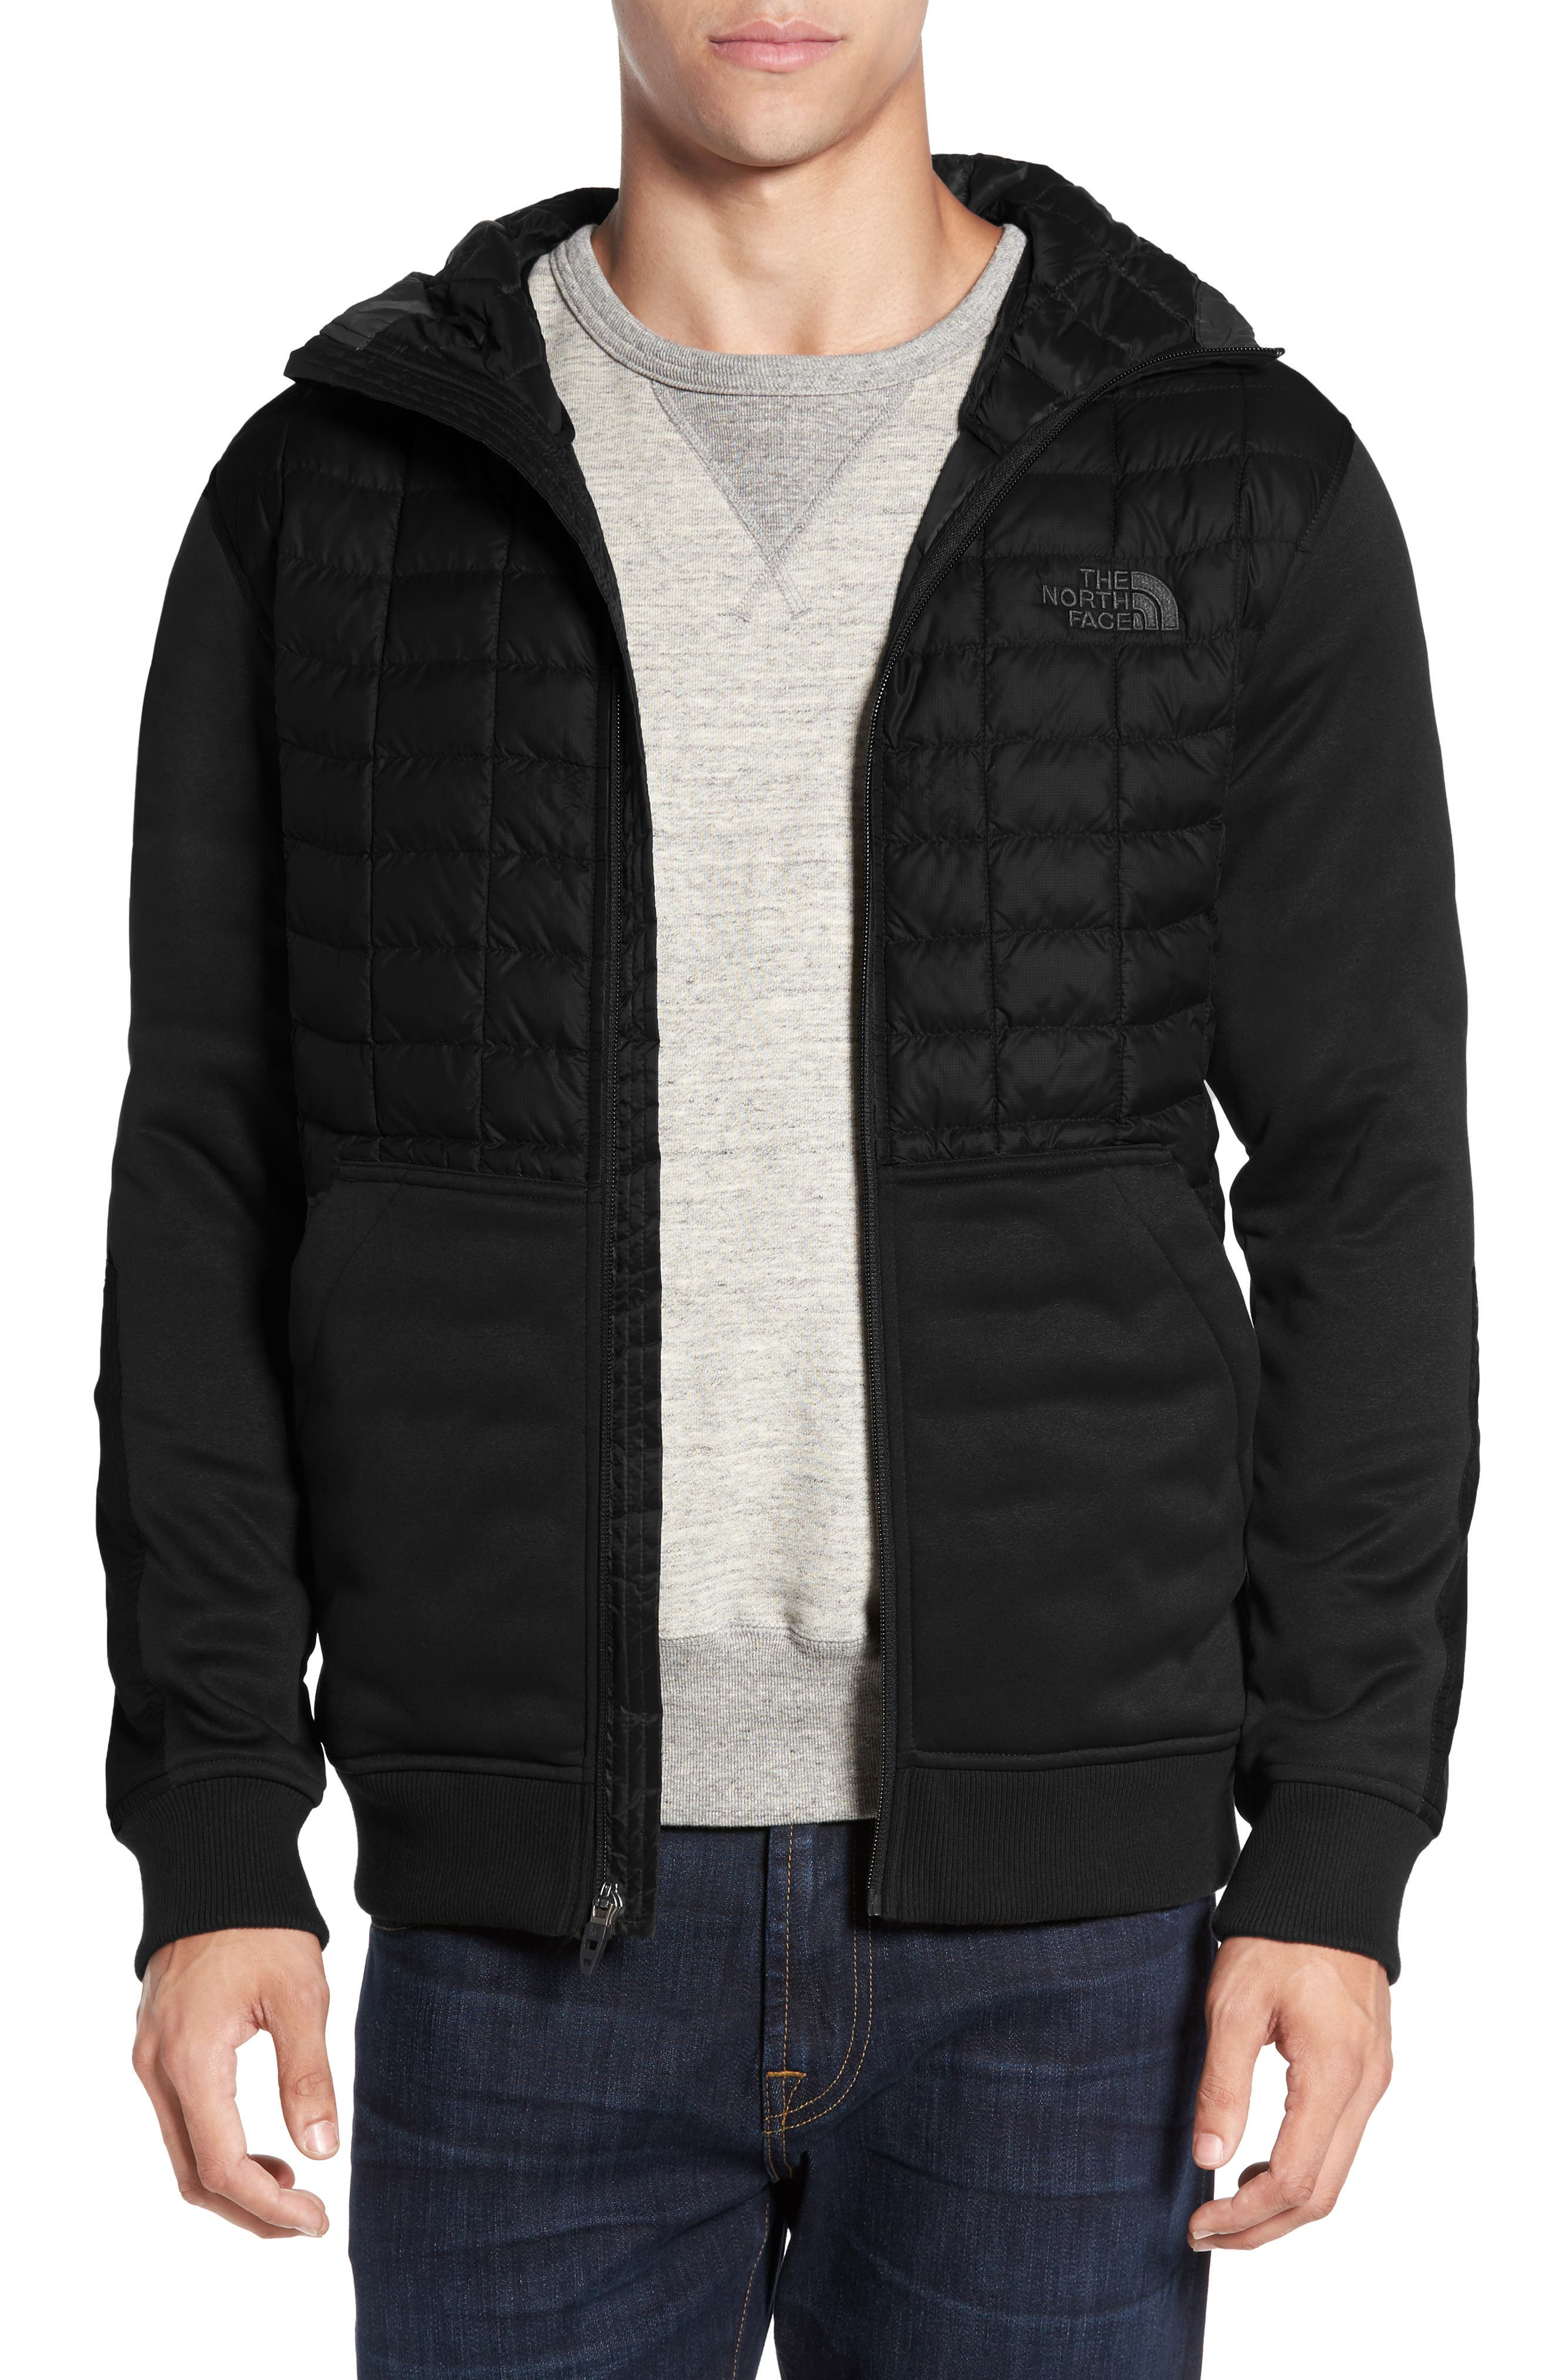 THE NORTH FACE 'Kilowatt' ThermoBall PrimaLoft<sup>®</sup> Hooded Jacket, Main, color, 001